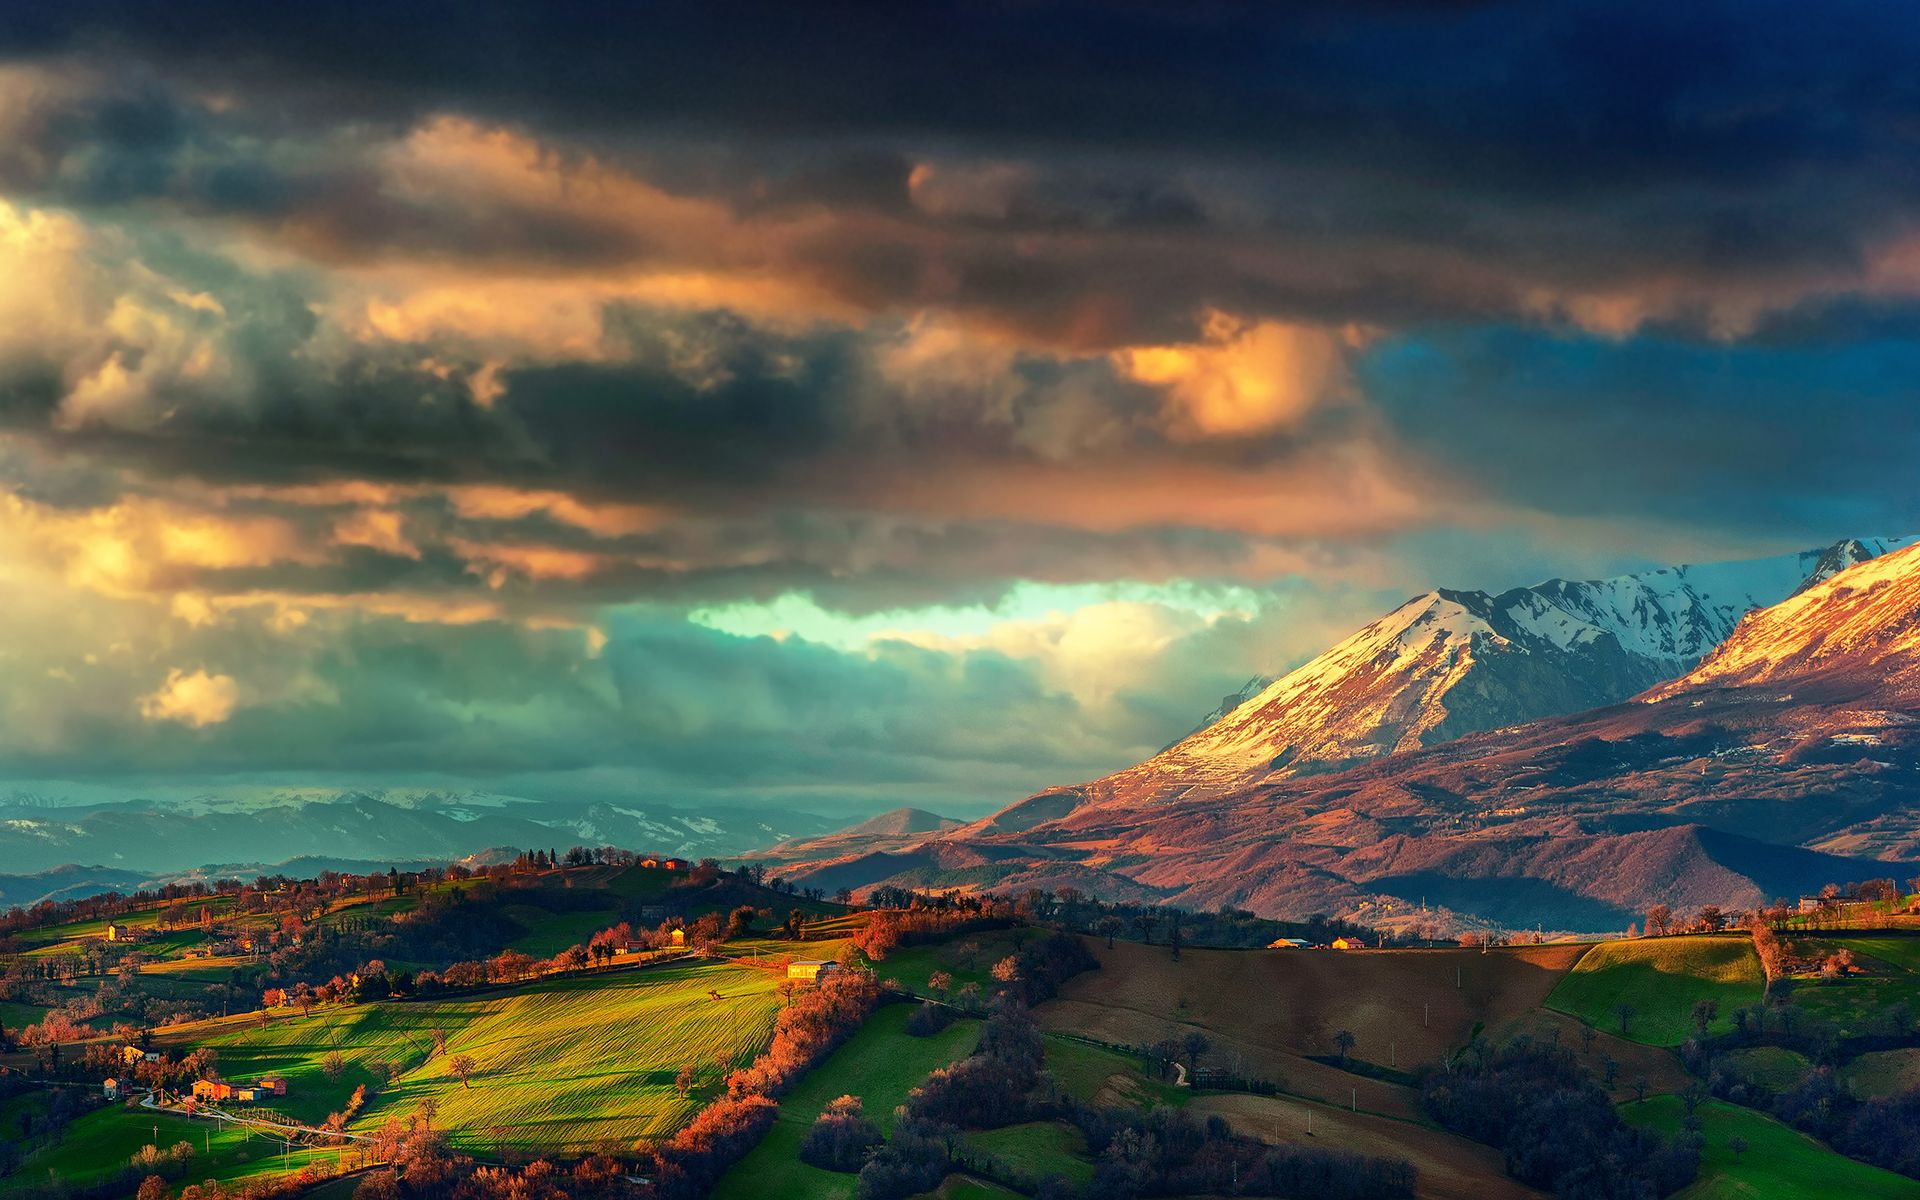 Apennines Landscape Italy Wallpaper #69358 - Resolution 1920x1200 px